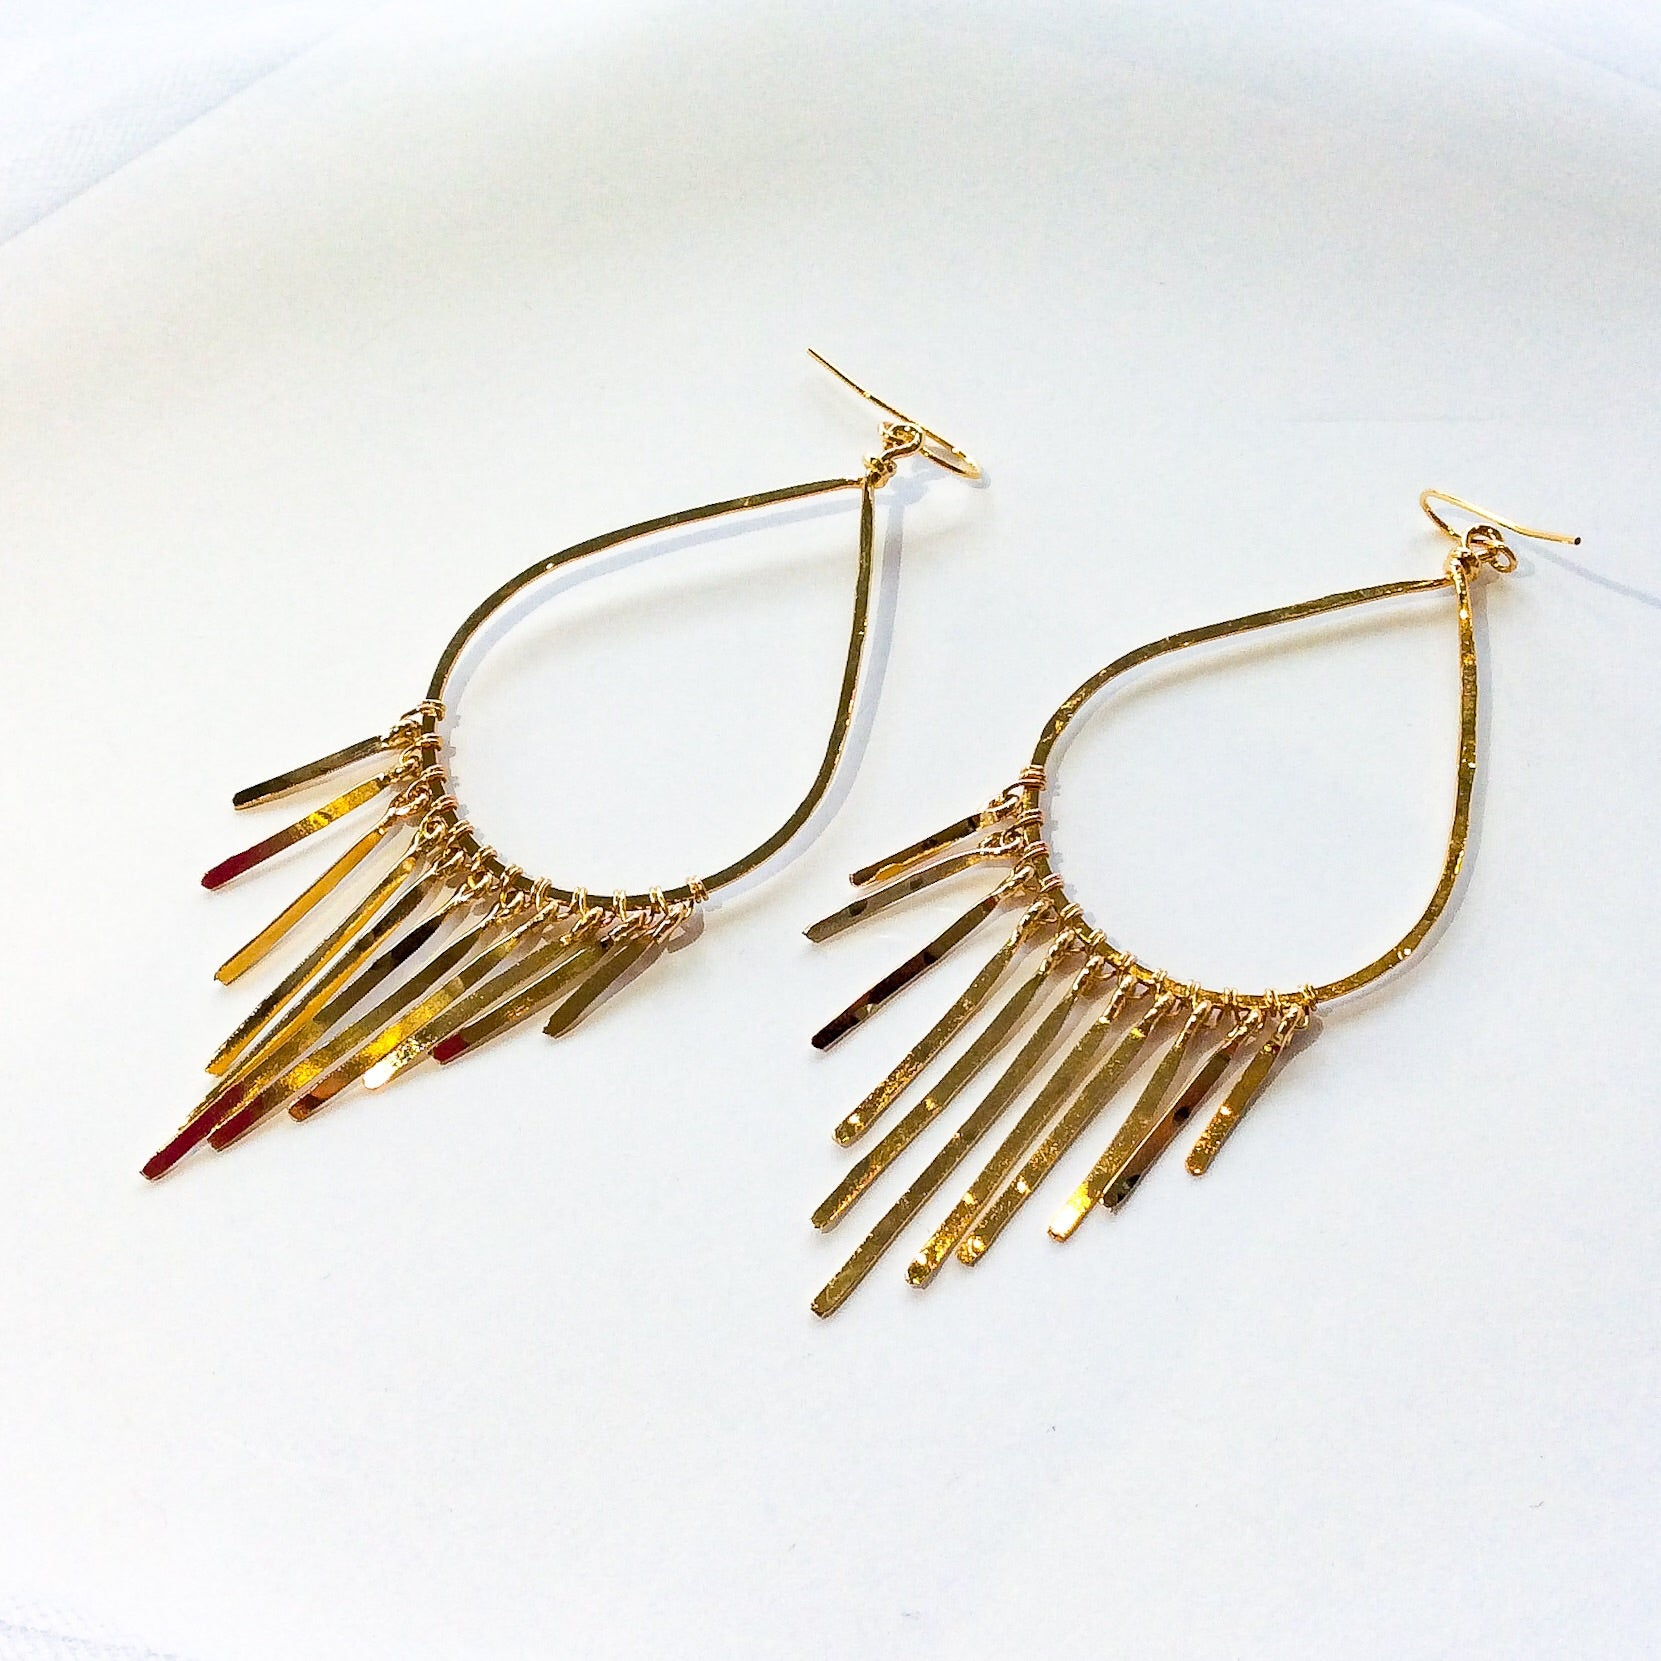 large gold plated hammered teardrop hoops with hammered, fringe bars dangling at the end